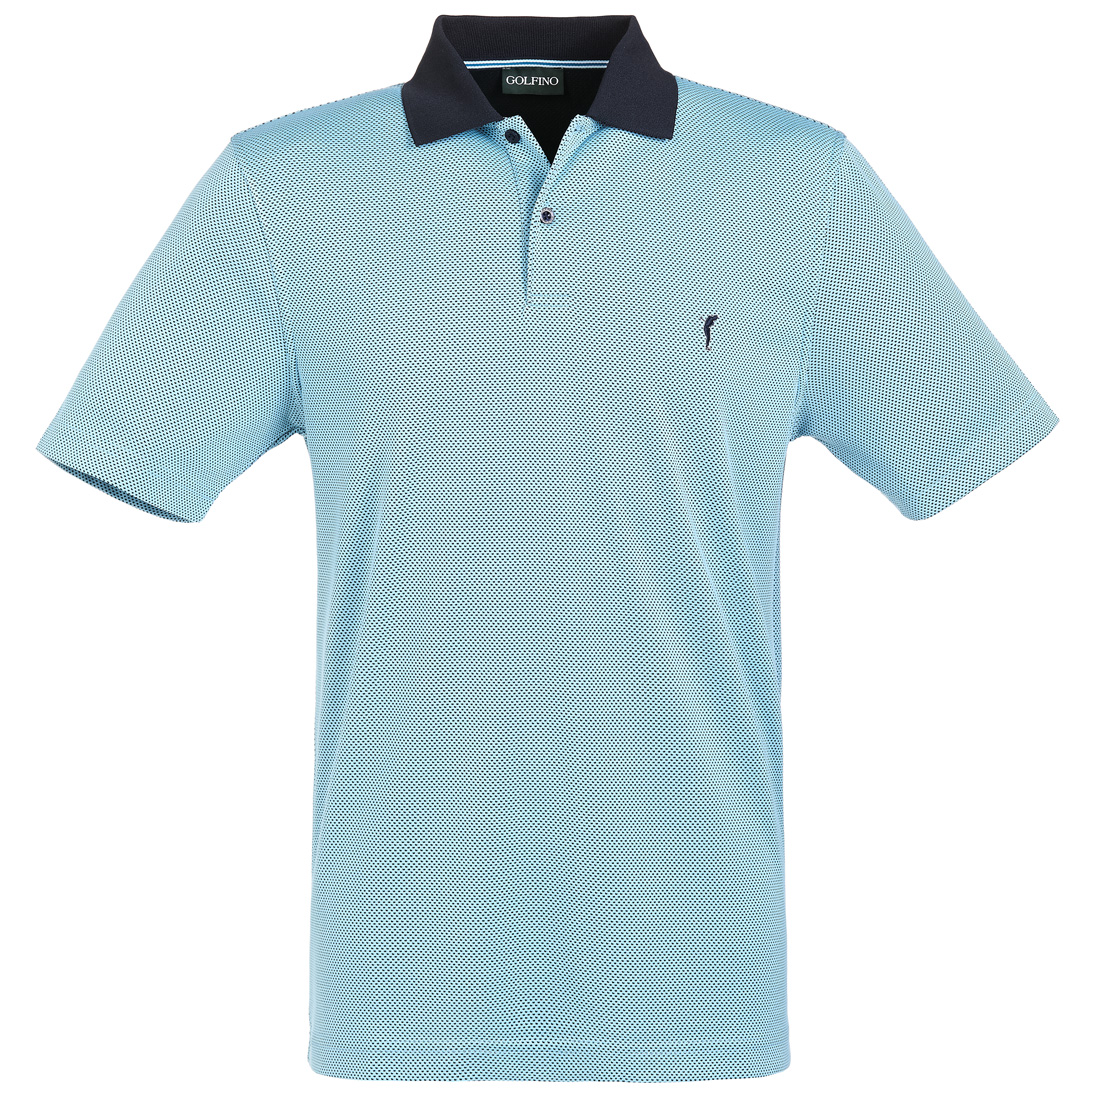 Bubble Jacquard Halbarm Funktions-Golfpolo Quick Dry